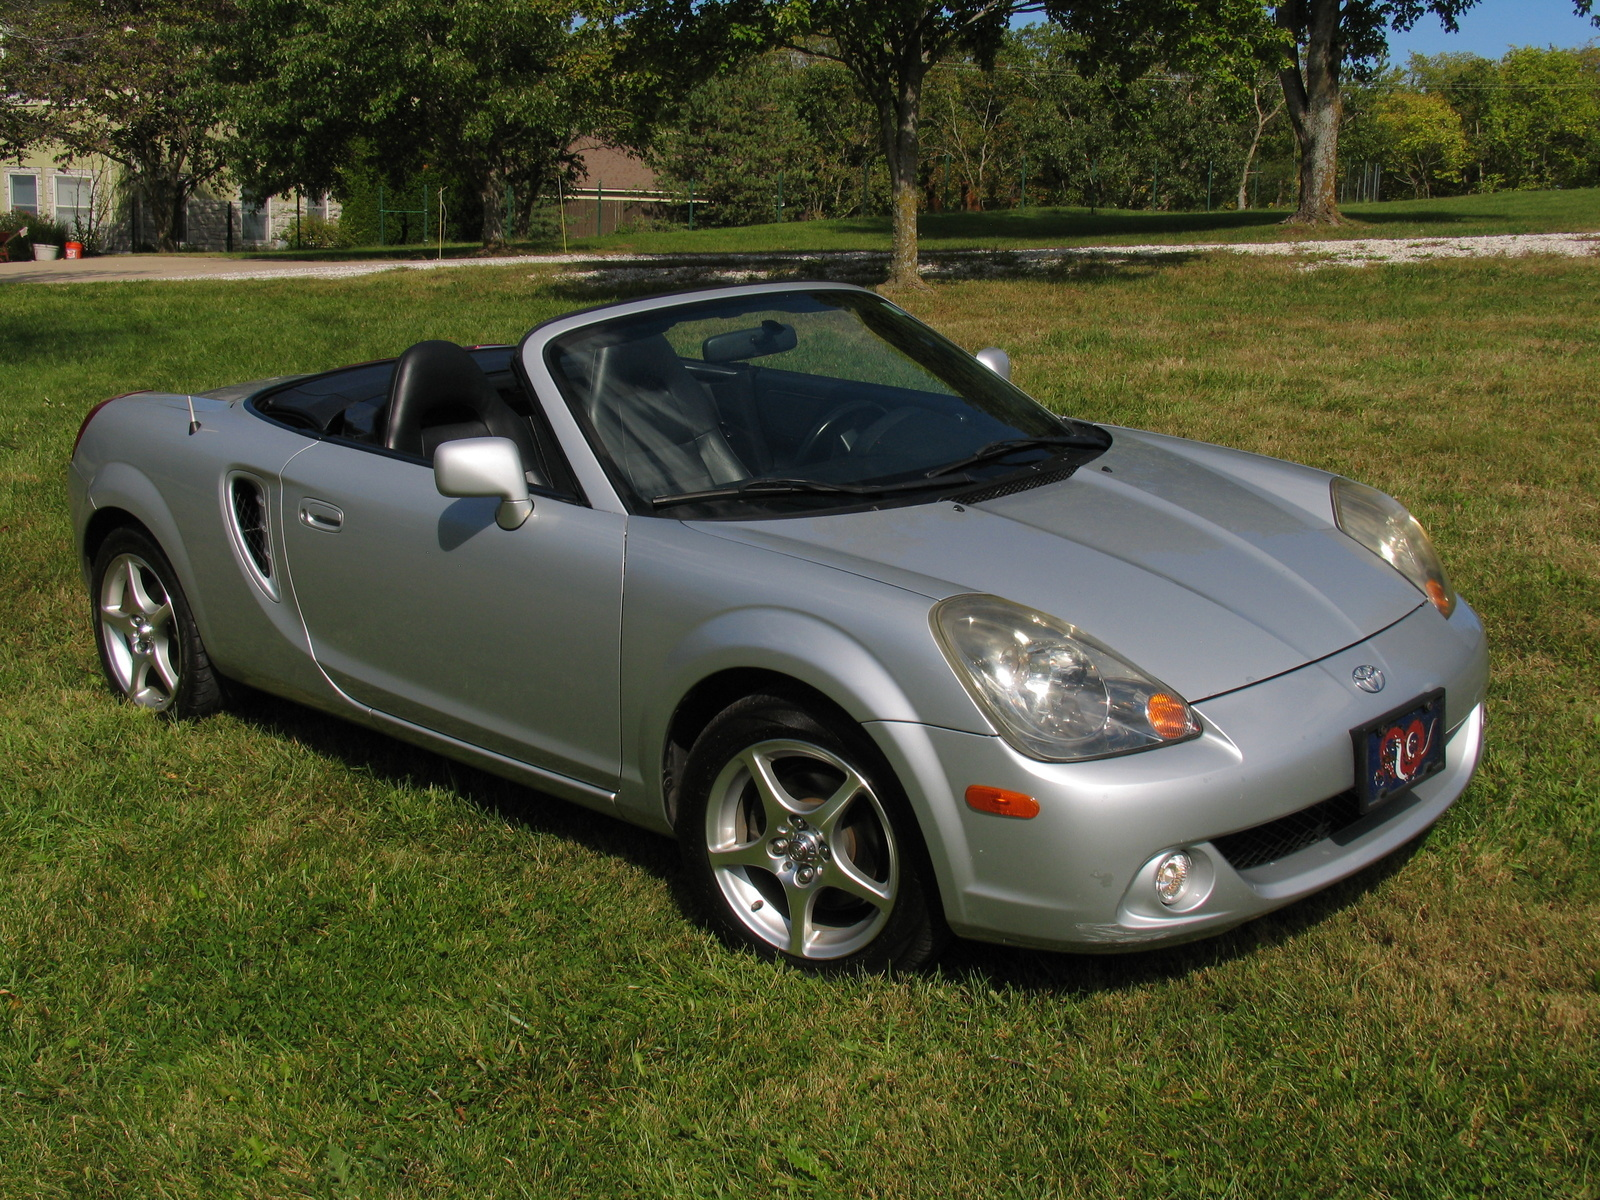 Cars For Sale In Kansas City Mo Carsforsale Com >> Used Convertible For Sale Kansas City, MO - CarGurus